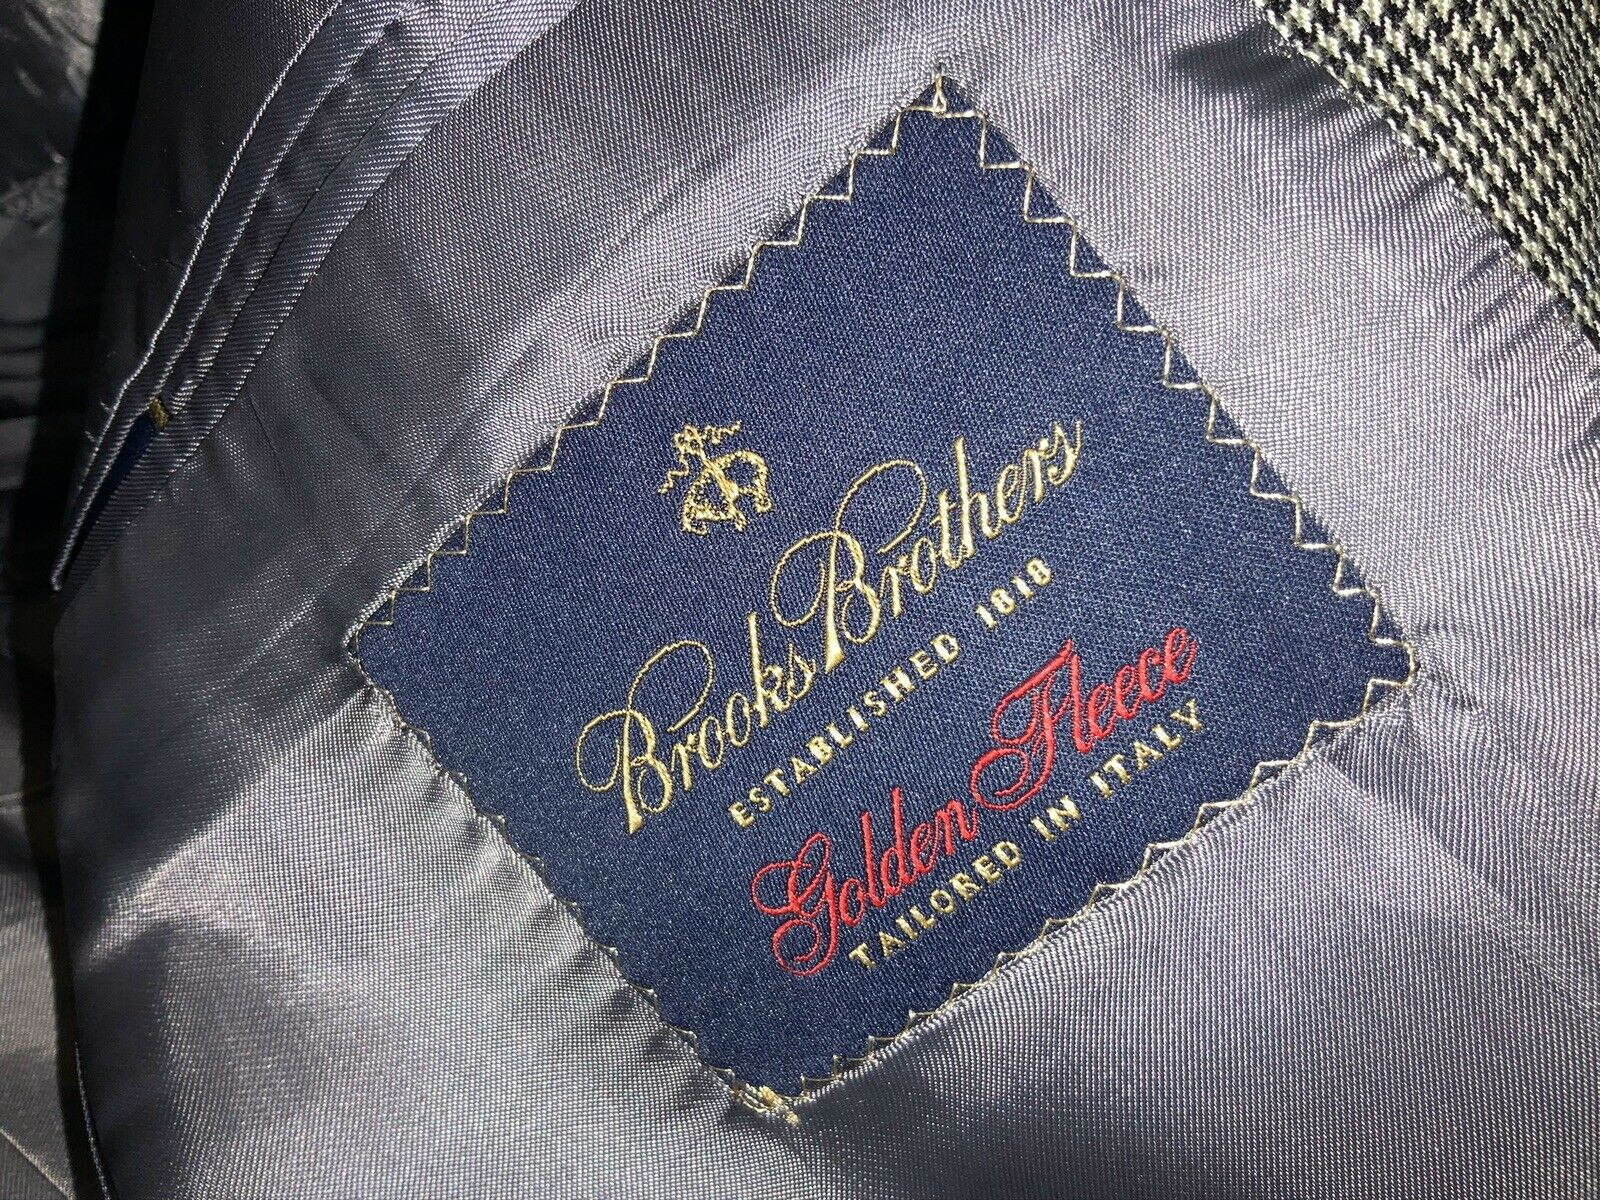 Brooks Brothers Golden Fleece Label - Guide to Brooks Brothers Lines and Sub brands